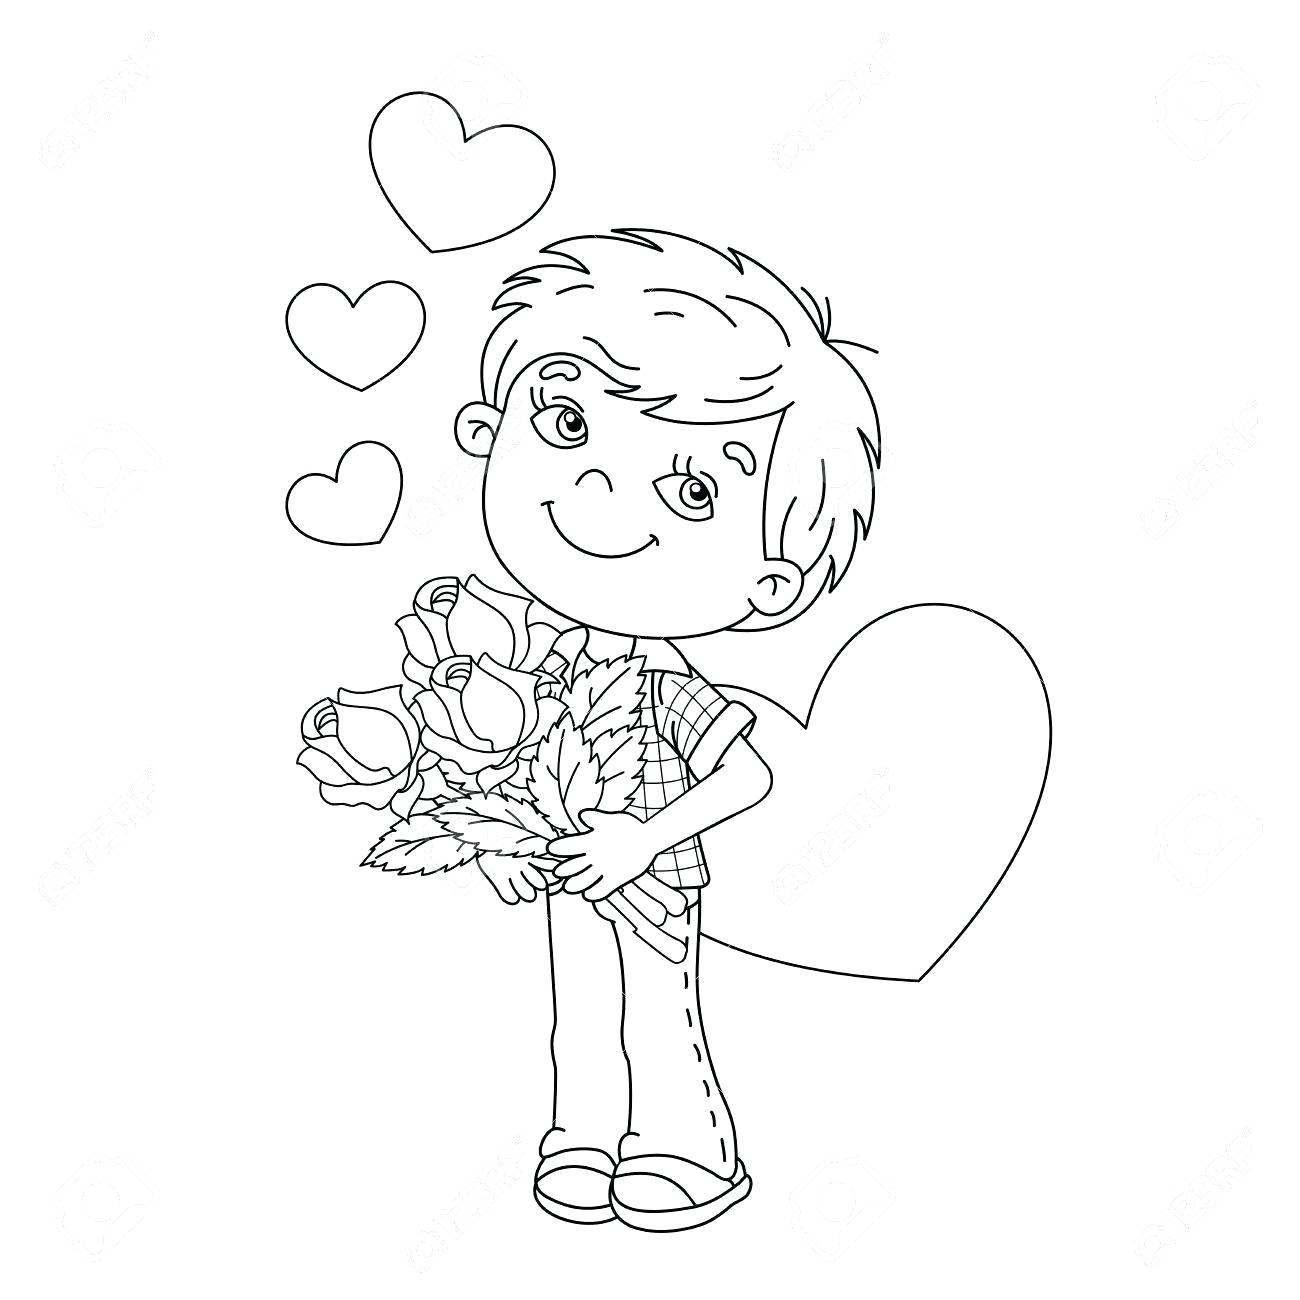 1300x1300 Coloring Coloring Pages Roses And Hearts Heart Rose Drawings